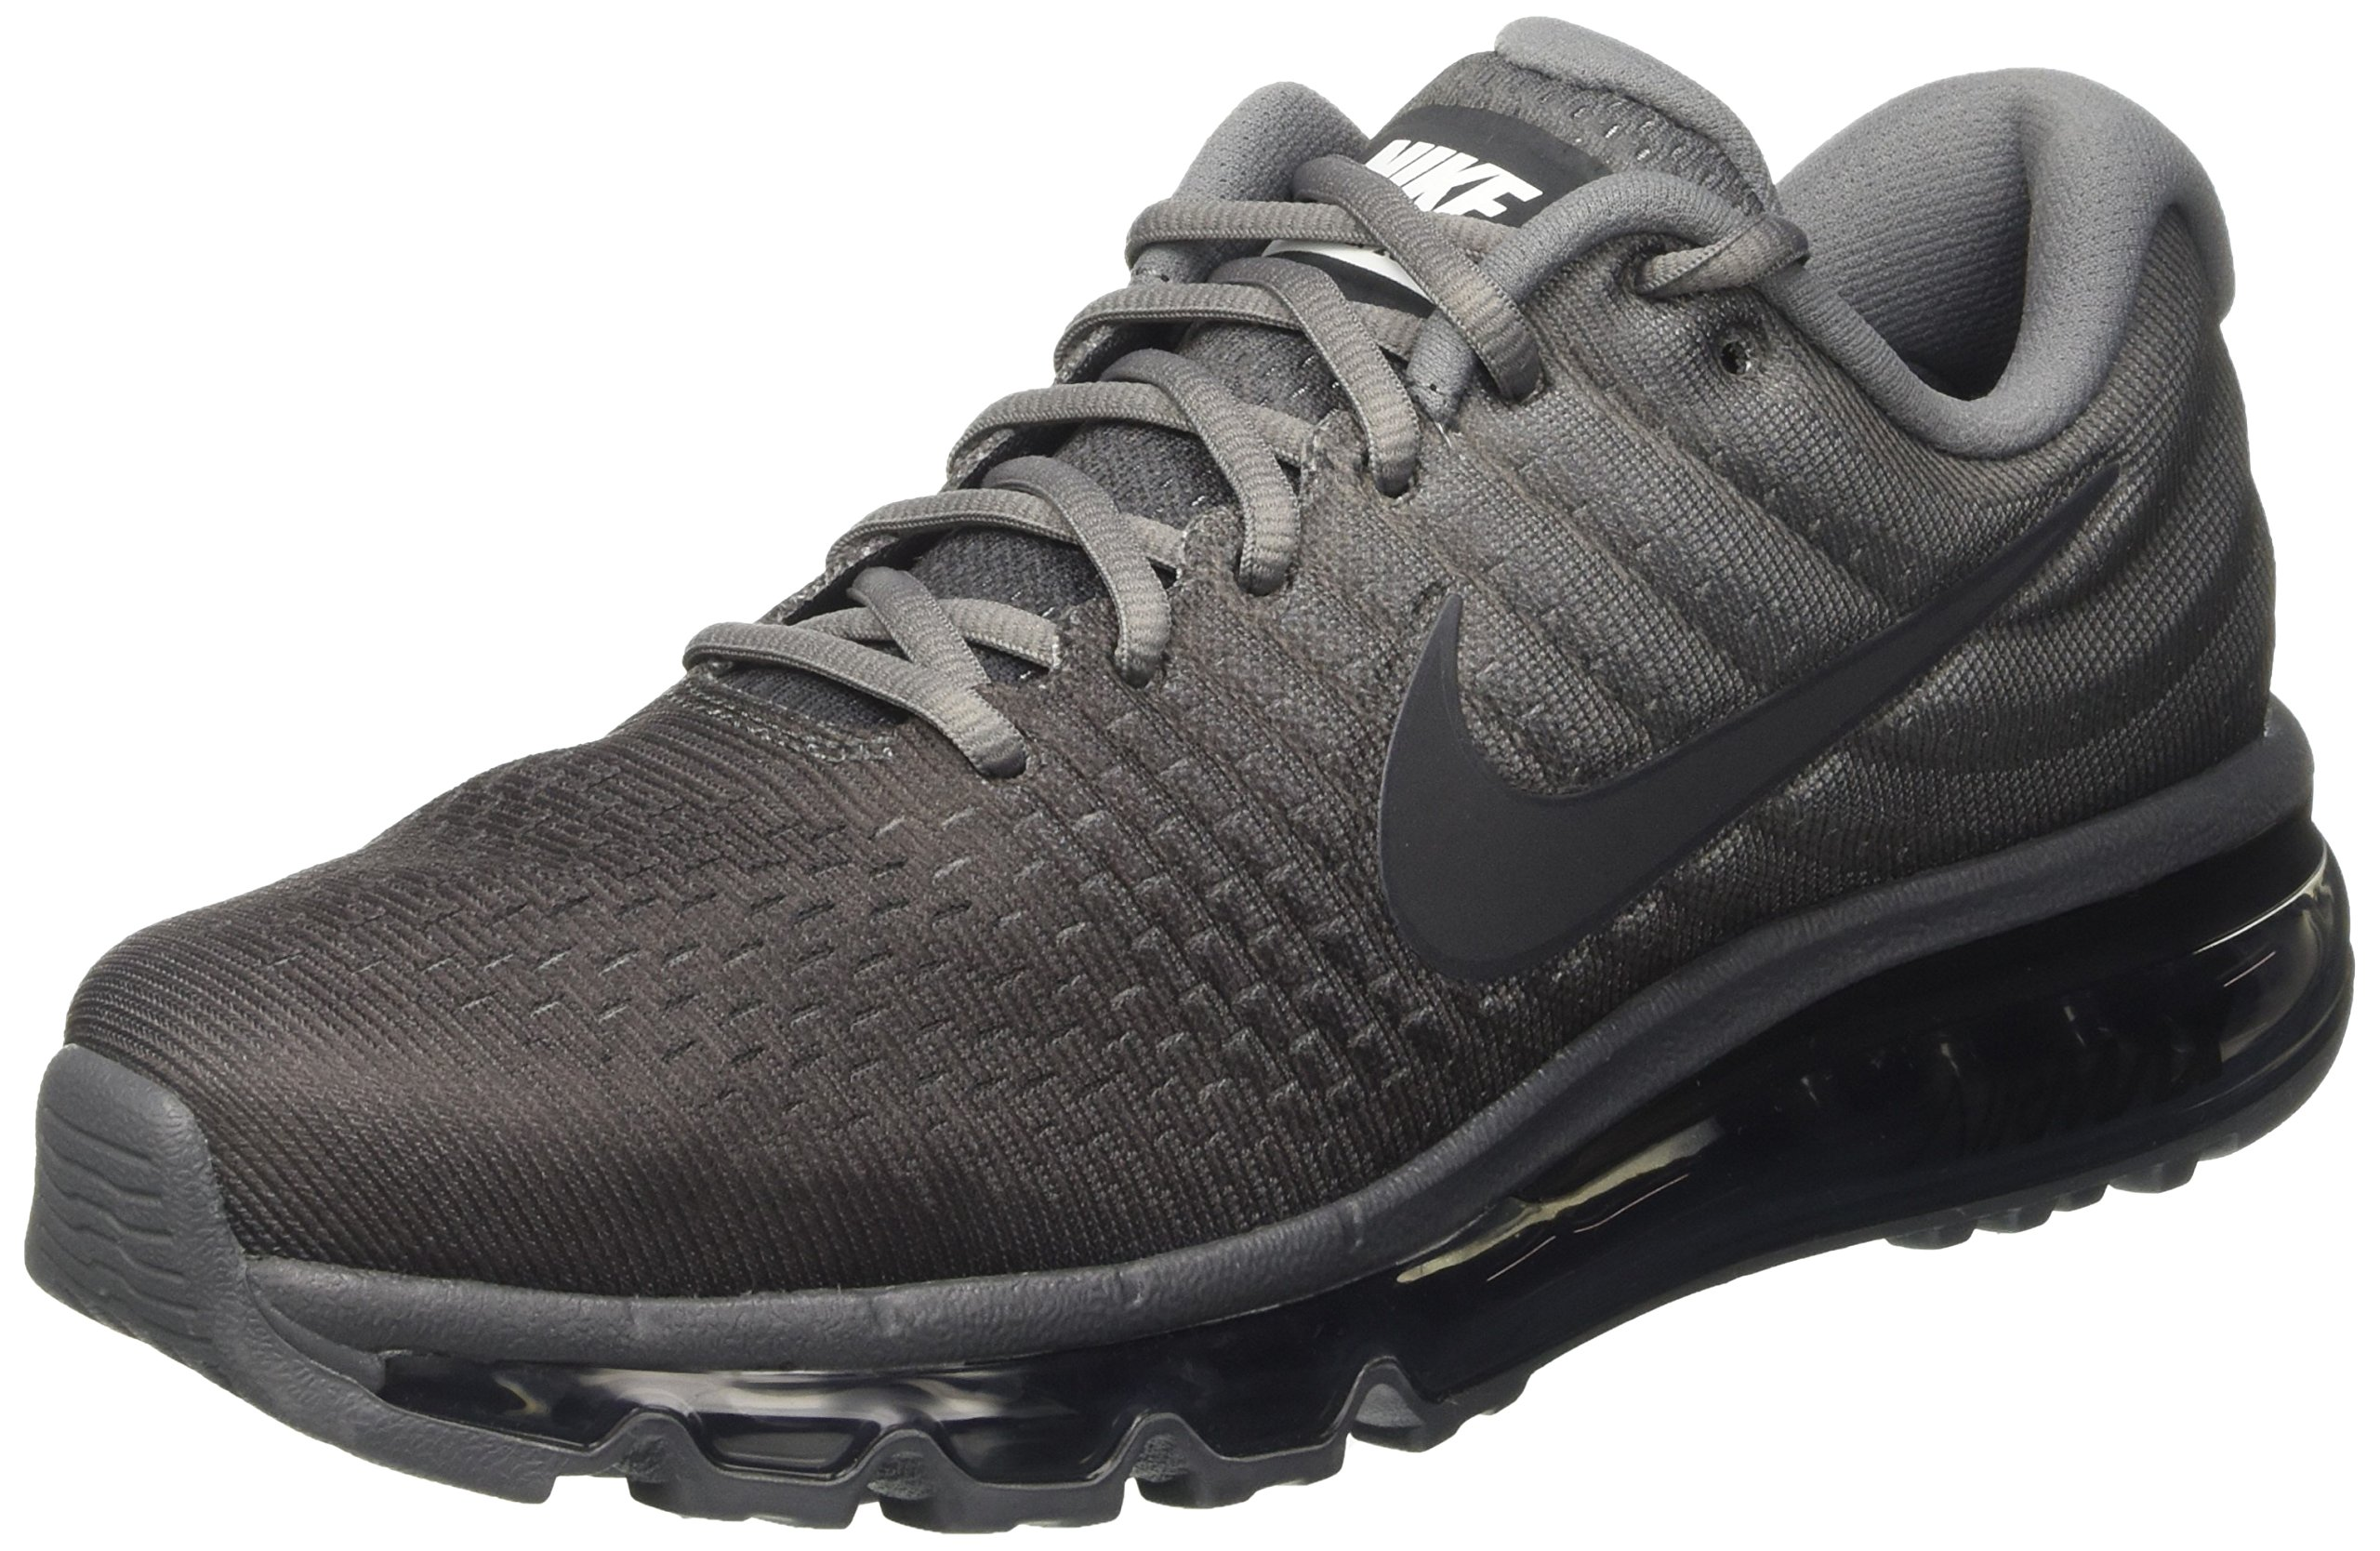 Nike Mens Air Max 2017 Running Shoes (6.5 M US, Cool Grey/Anthracite)